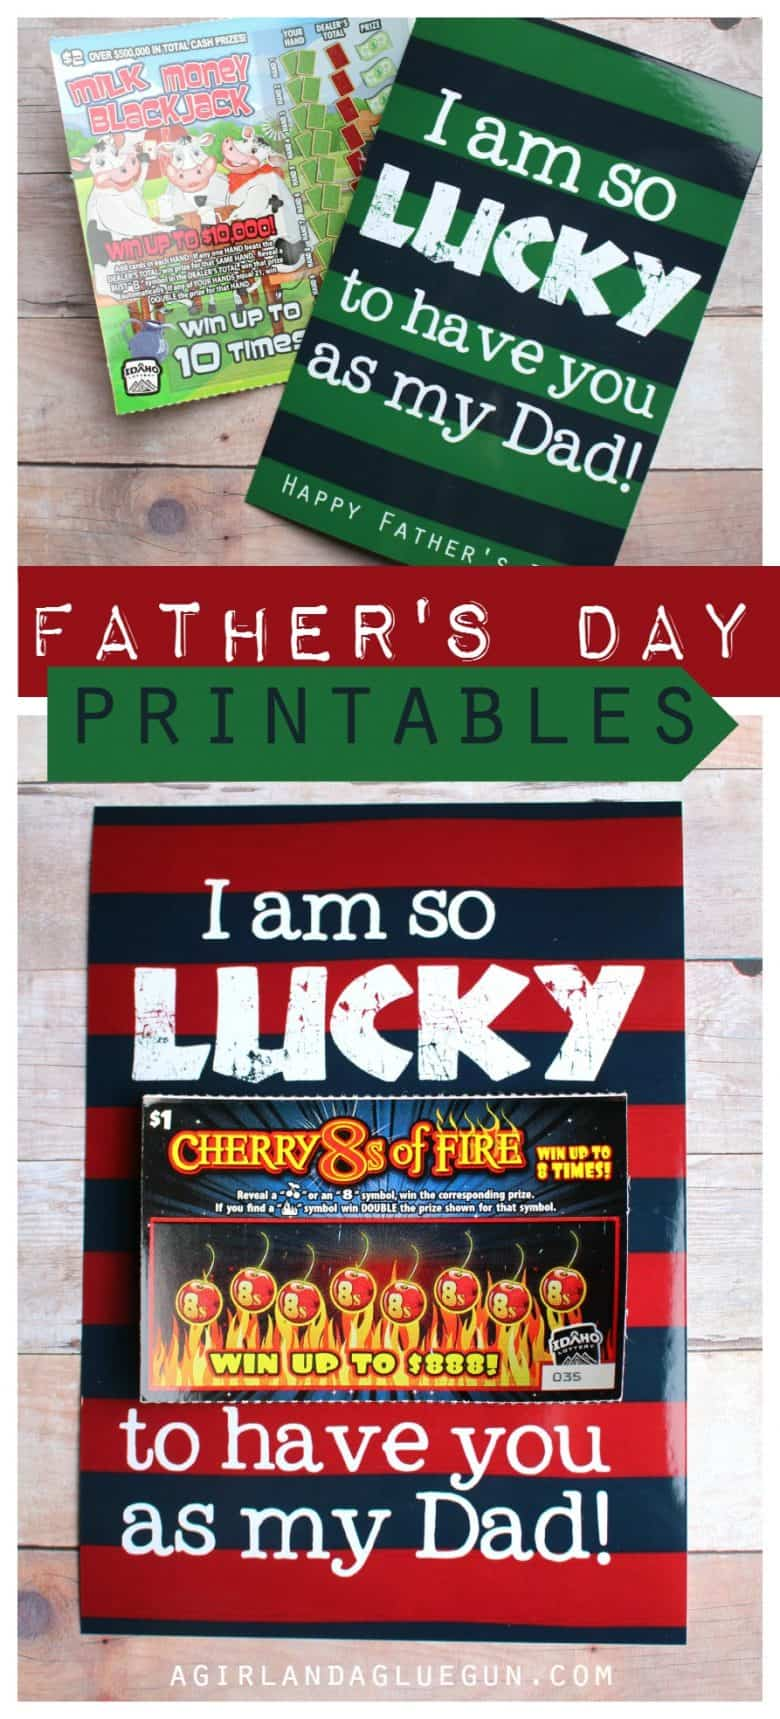 free father's day printables for lottery tickets